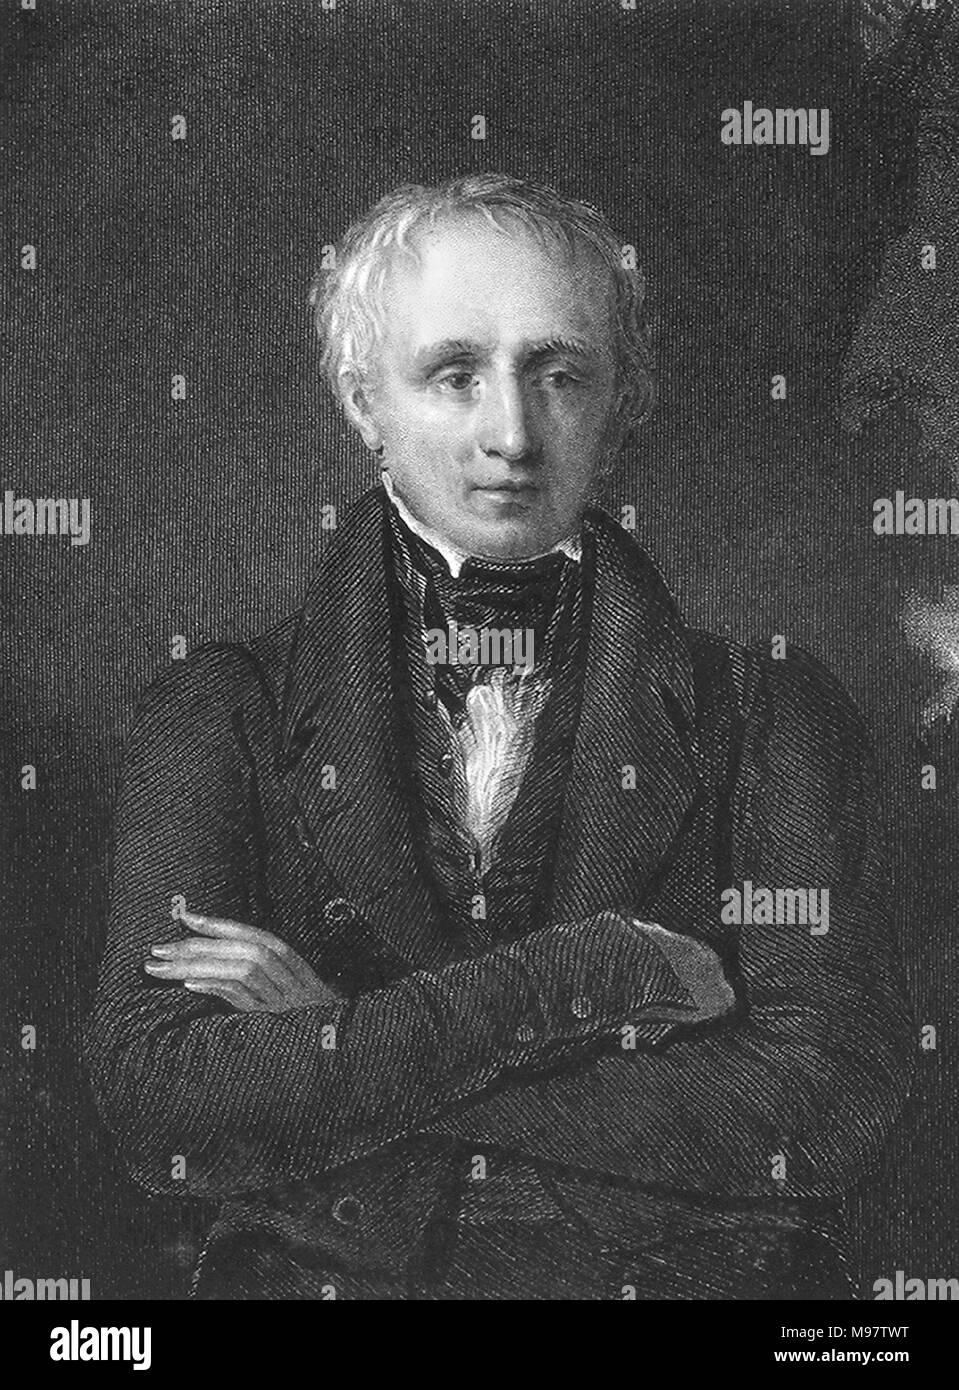 William Wordsworth (1770-1850), an 1833 engraving by John Cochran from a painting by Sir William Boxall, - Stock Image